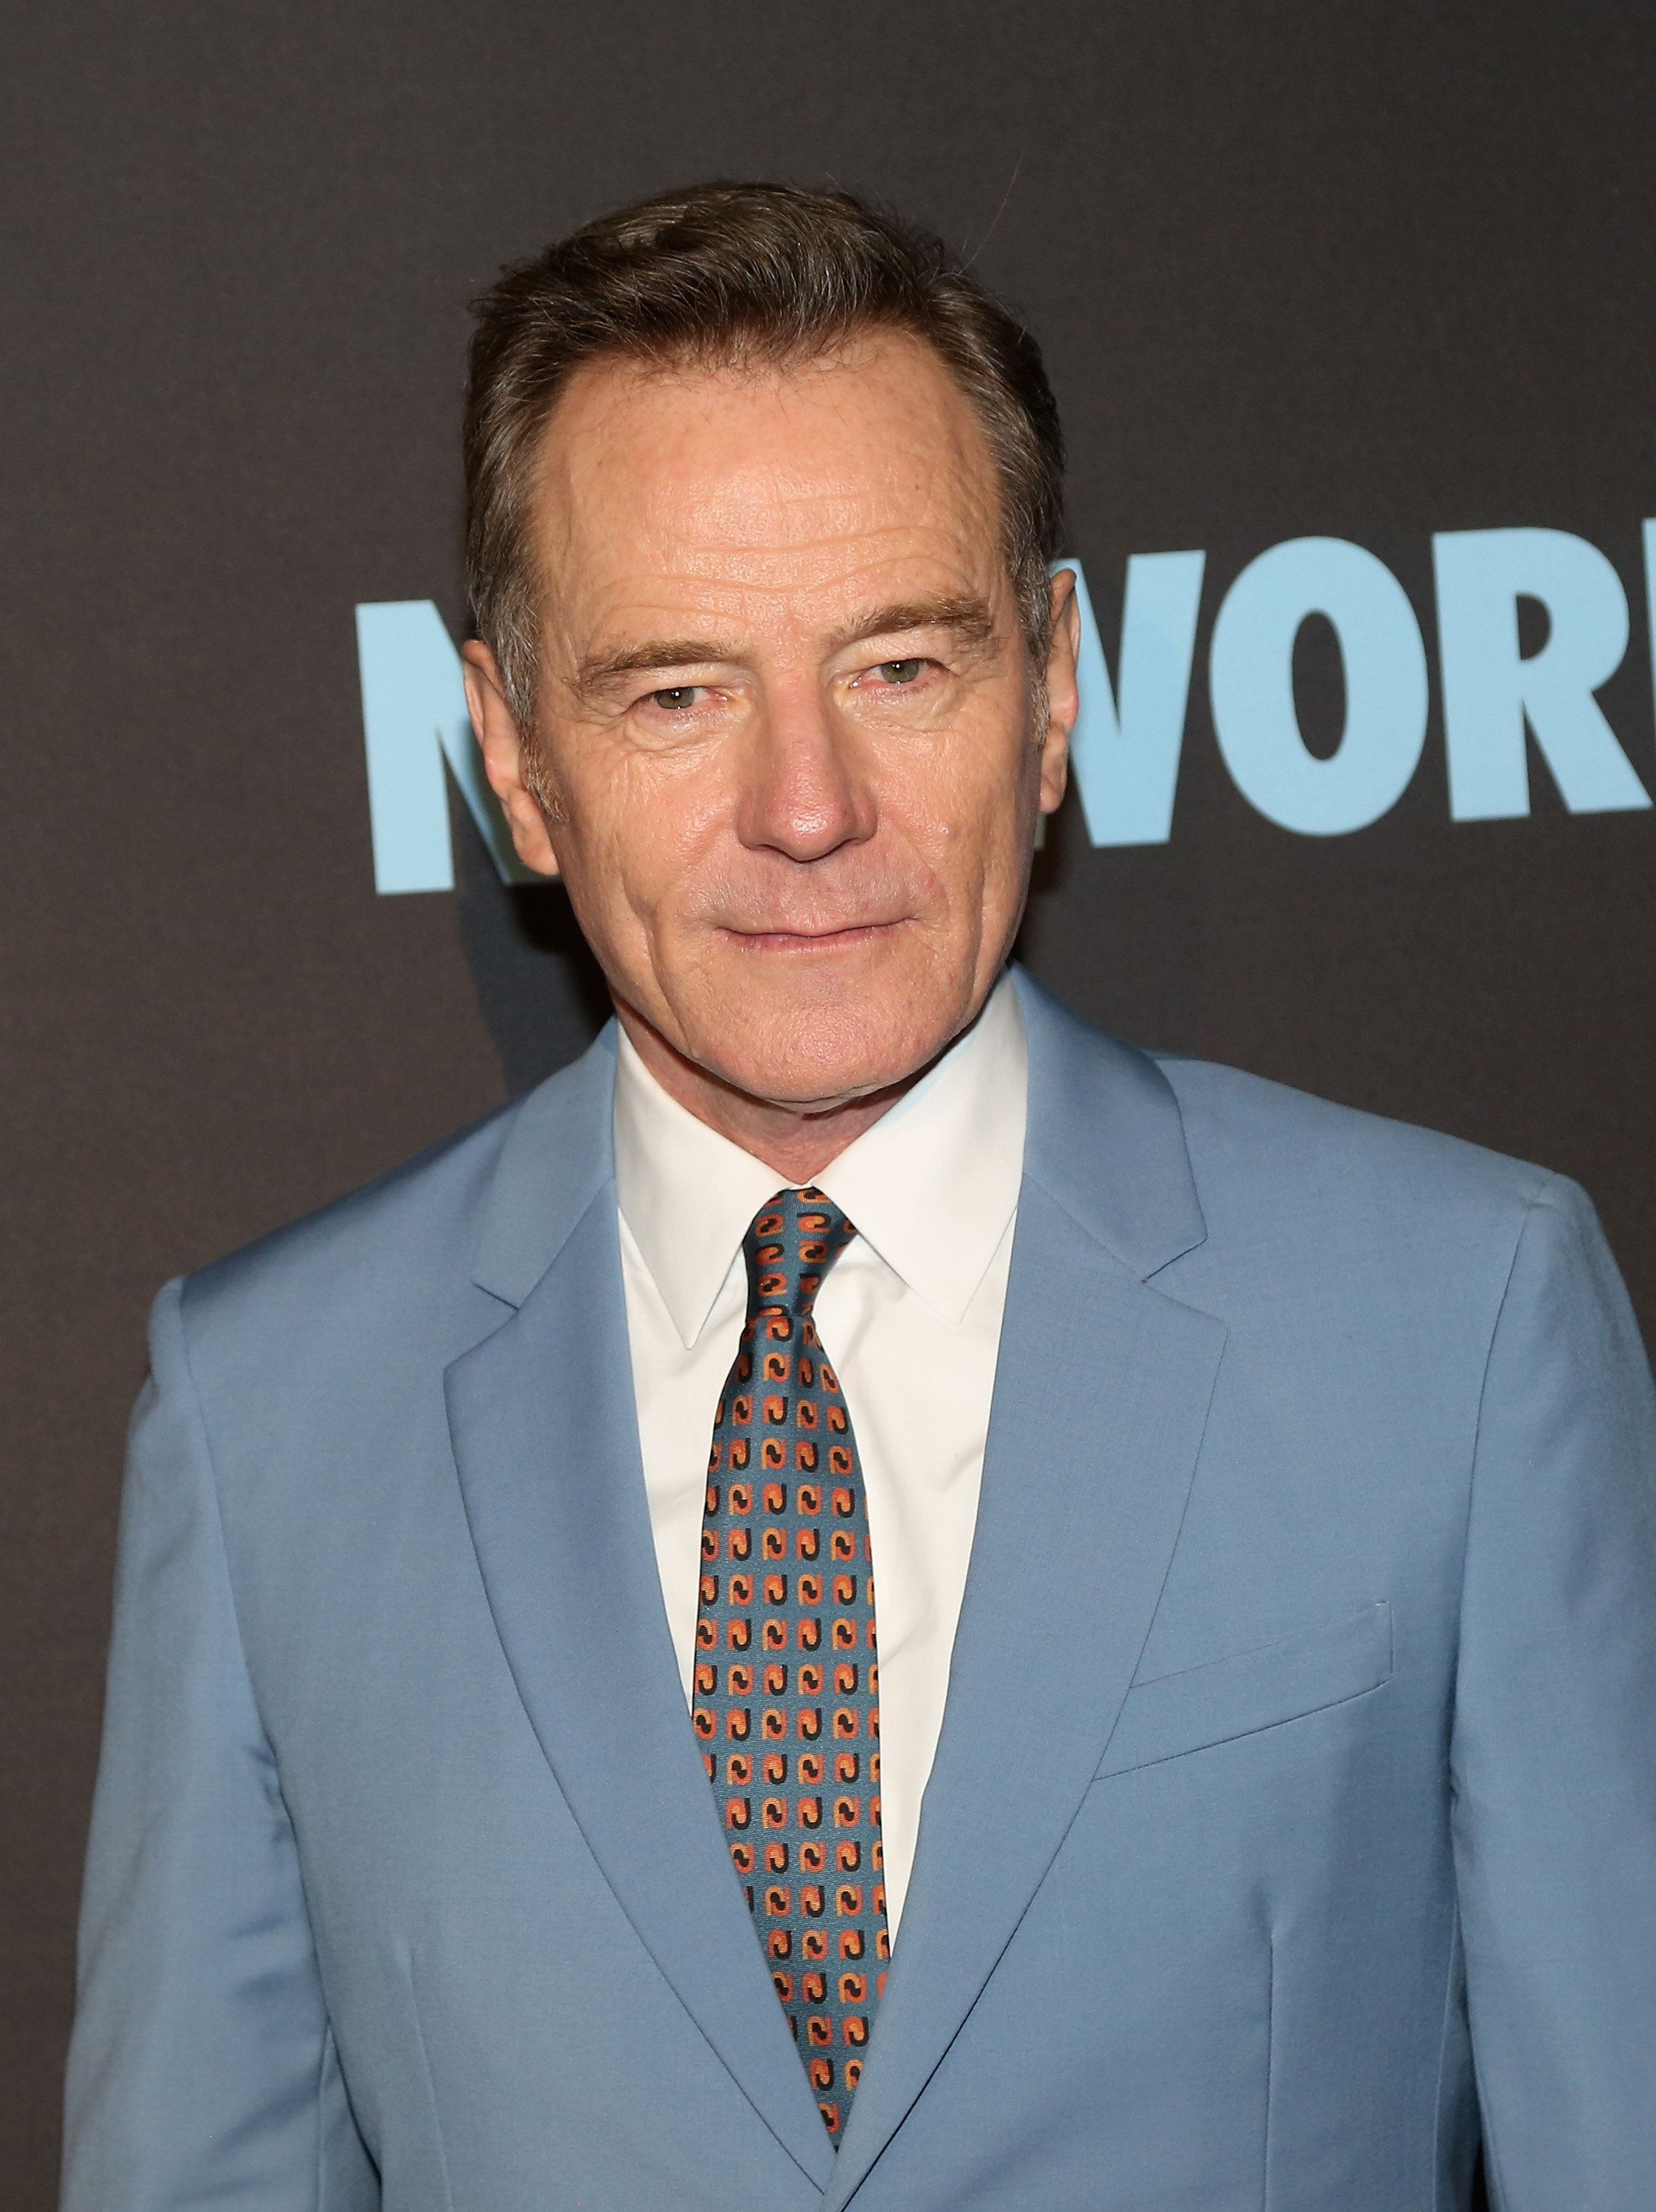 Actor Bryan Cranston recently defended himself for playing the role of Phillip Lacasse, a quadriplegic billionaire, in the ne